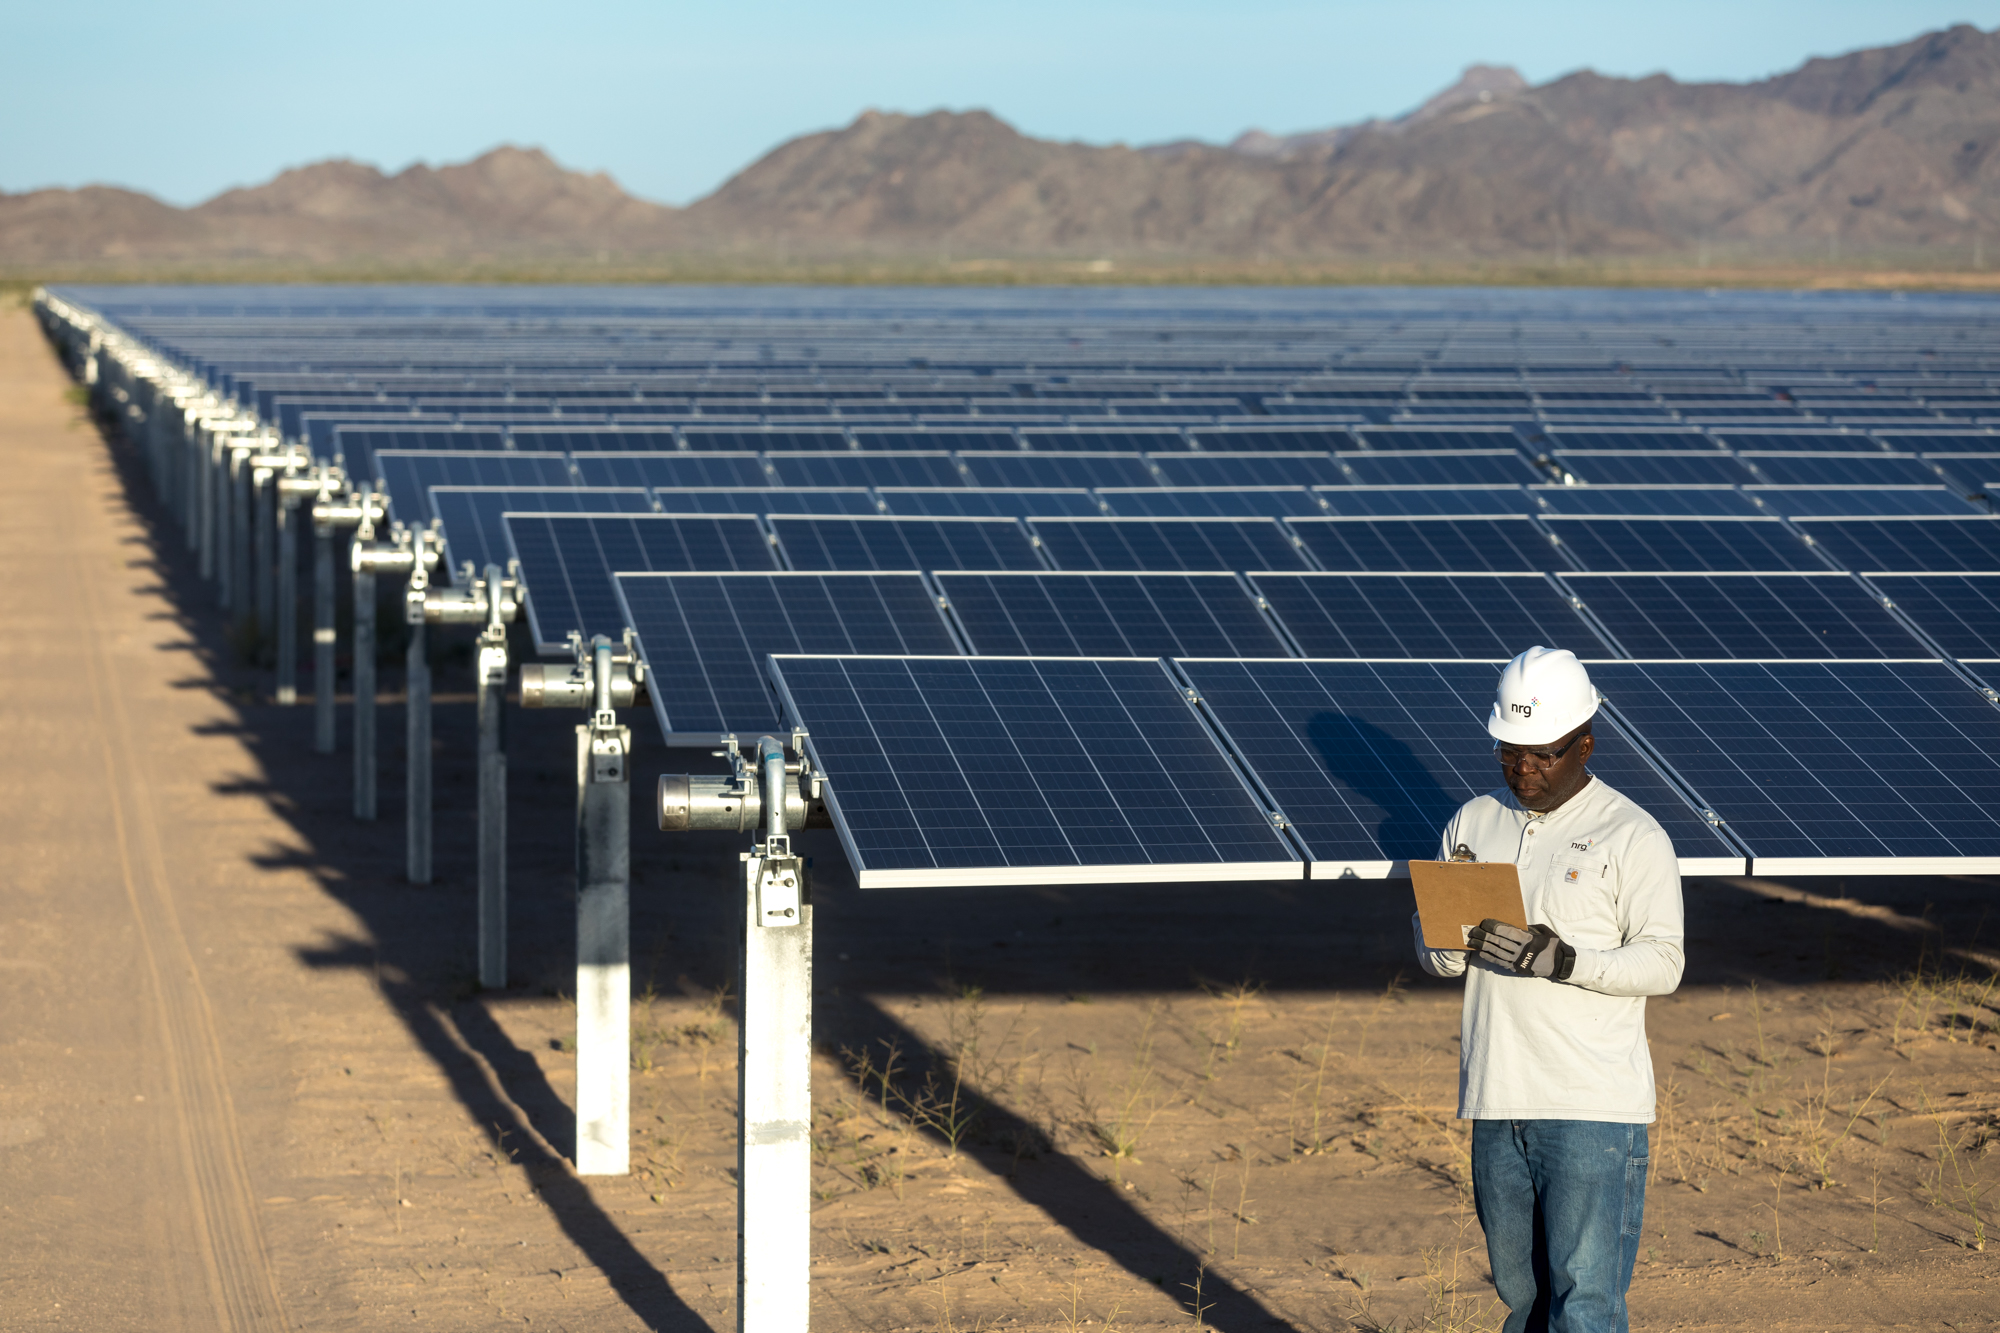 The solar farm will generate renewable power for use at the company's San Jose headquarters. Source: NRG Energy